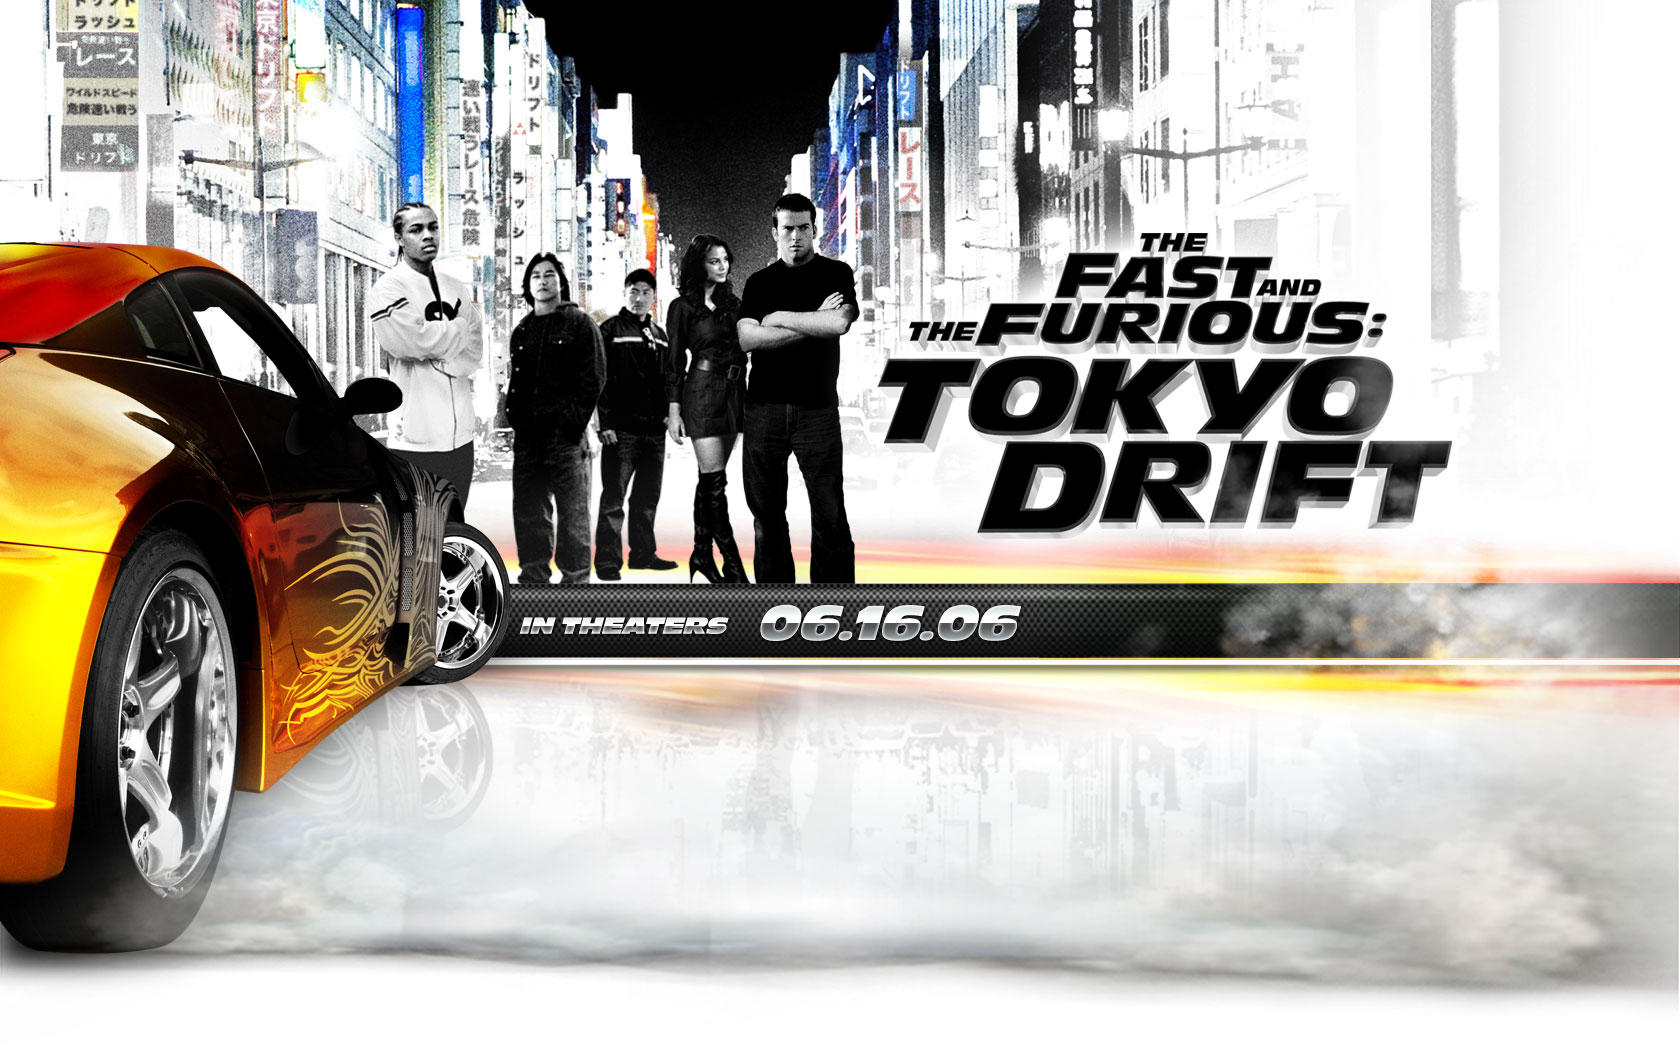 fast and furious tokyo drift movie songs free download